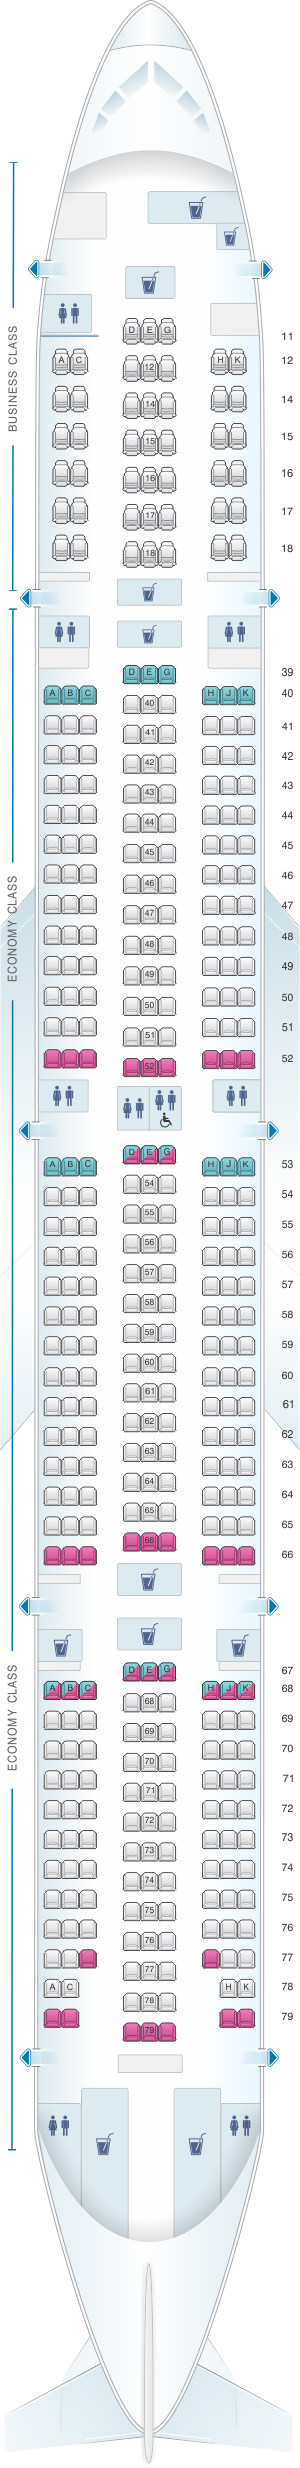 cathay pacific cx837 seat map Seat Map Cathay Pacific Airways Boeing B777 300 773 Seatmaestro cathay pacific cx837 seat map